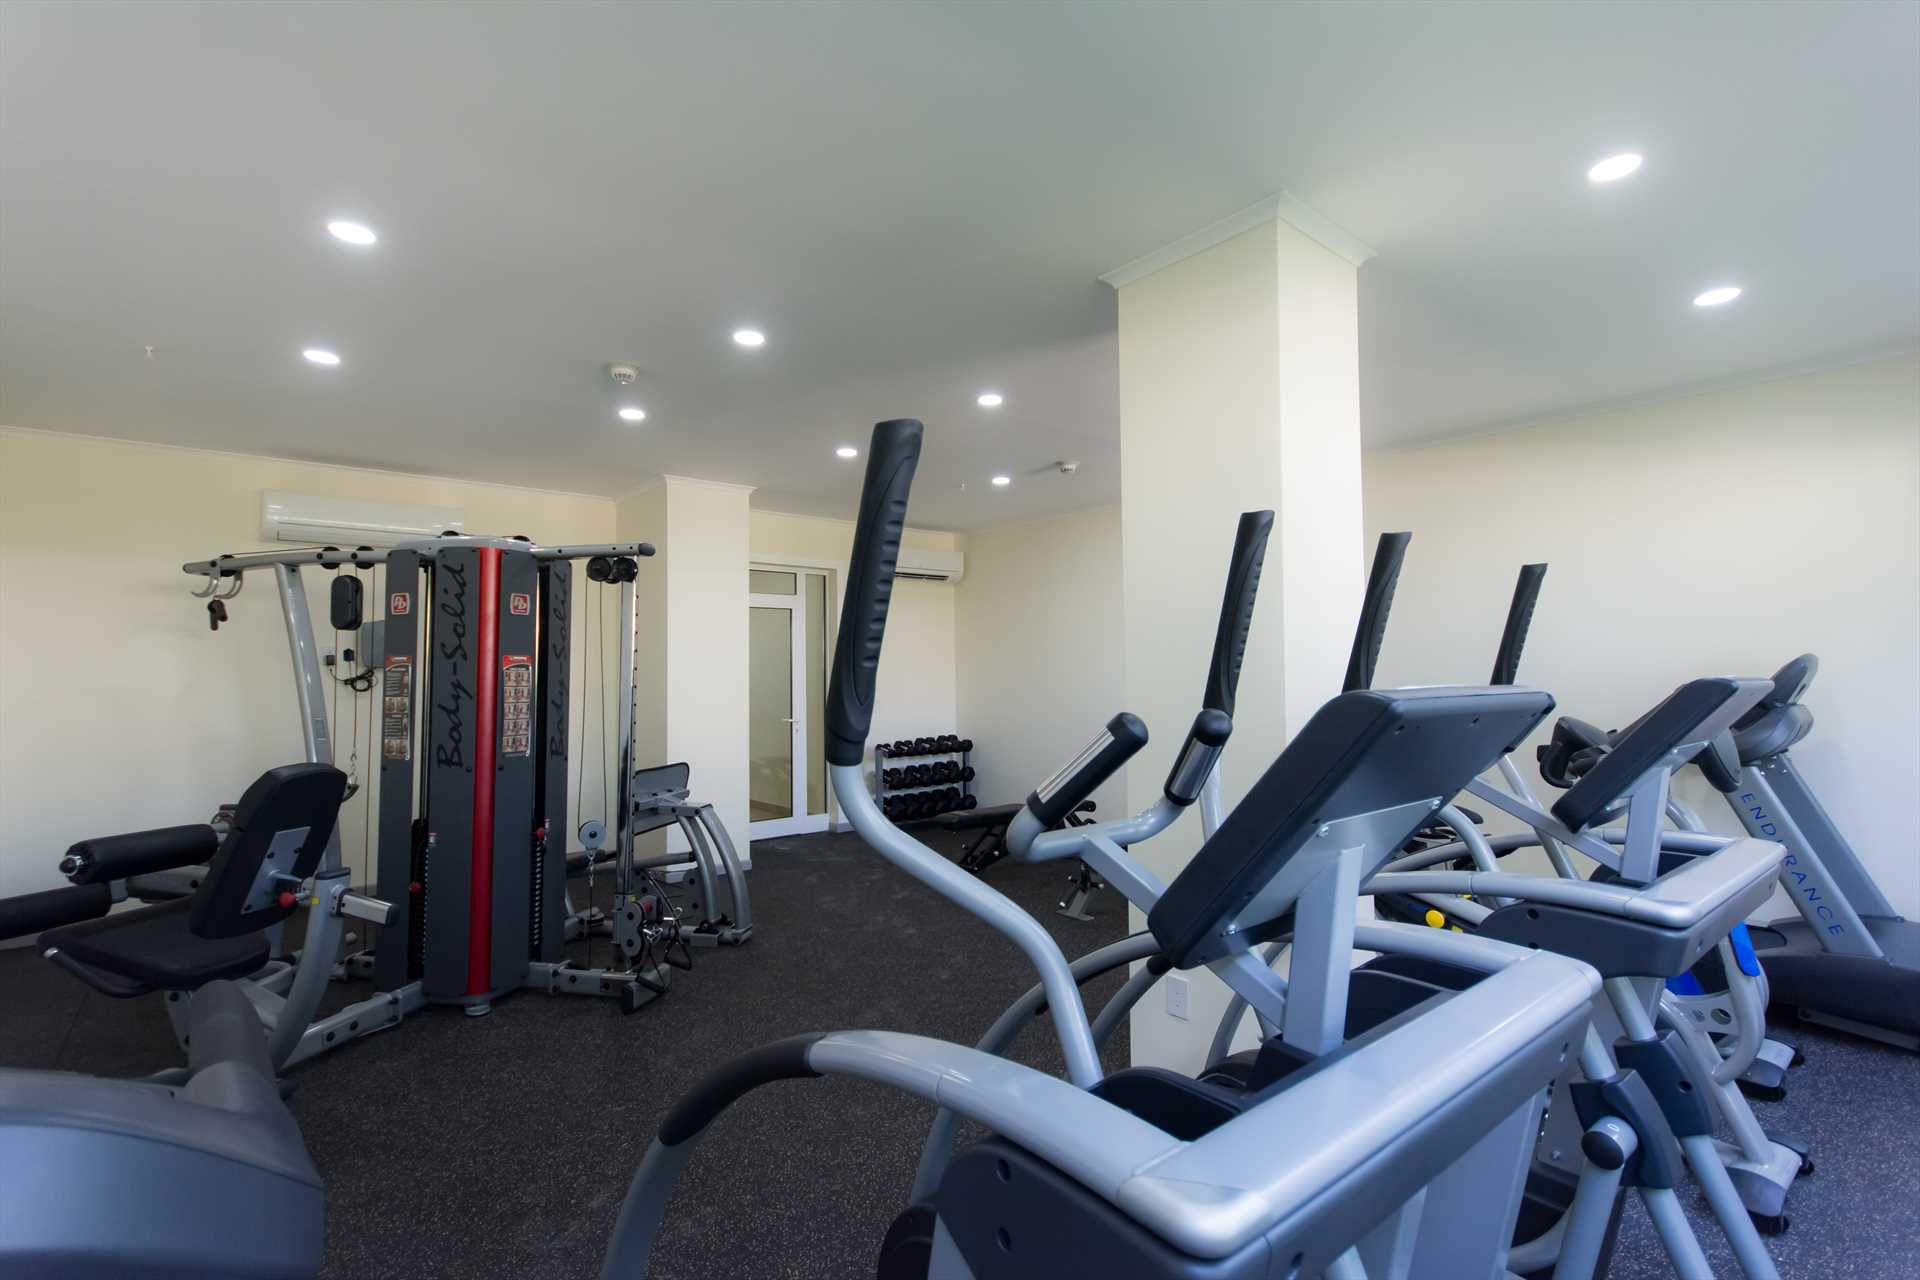 The gym room at the LeVent resort